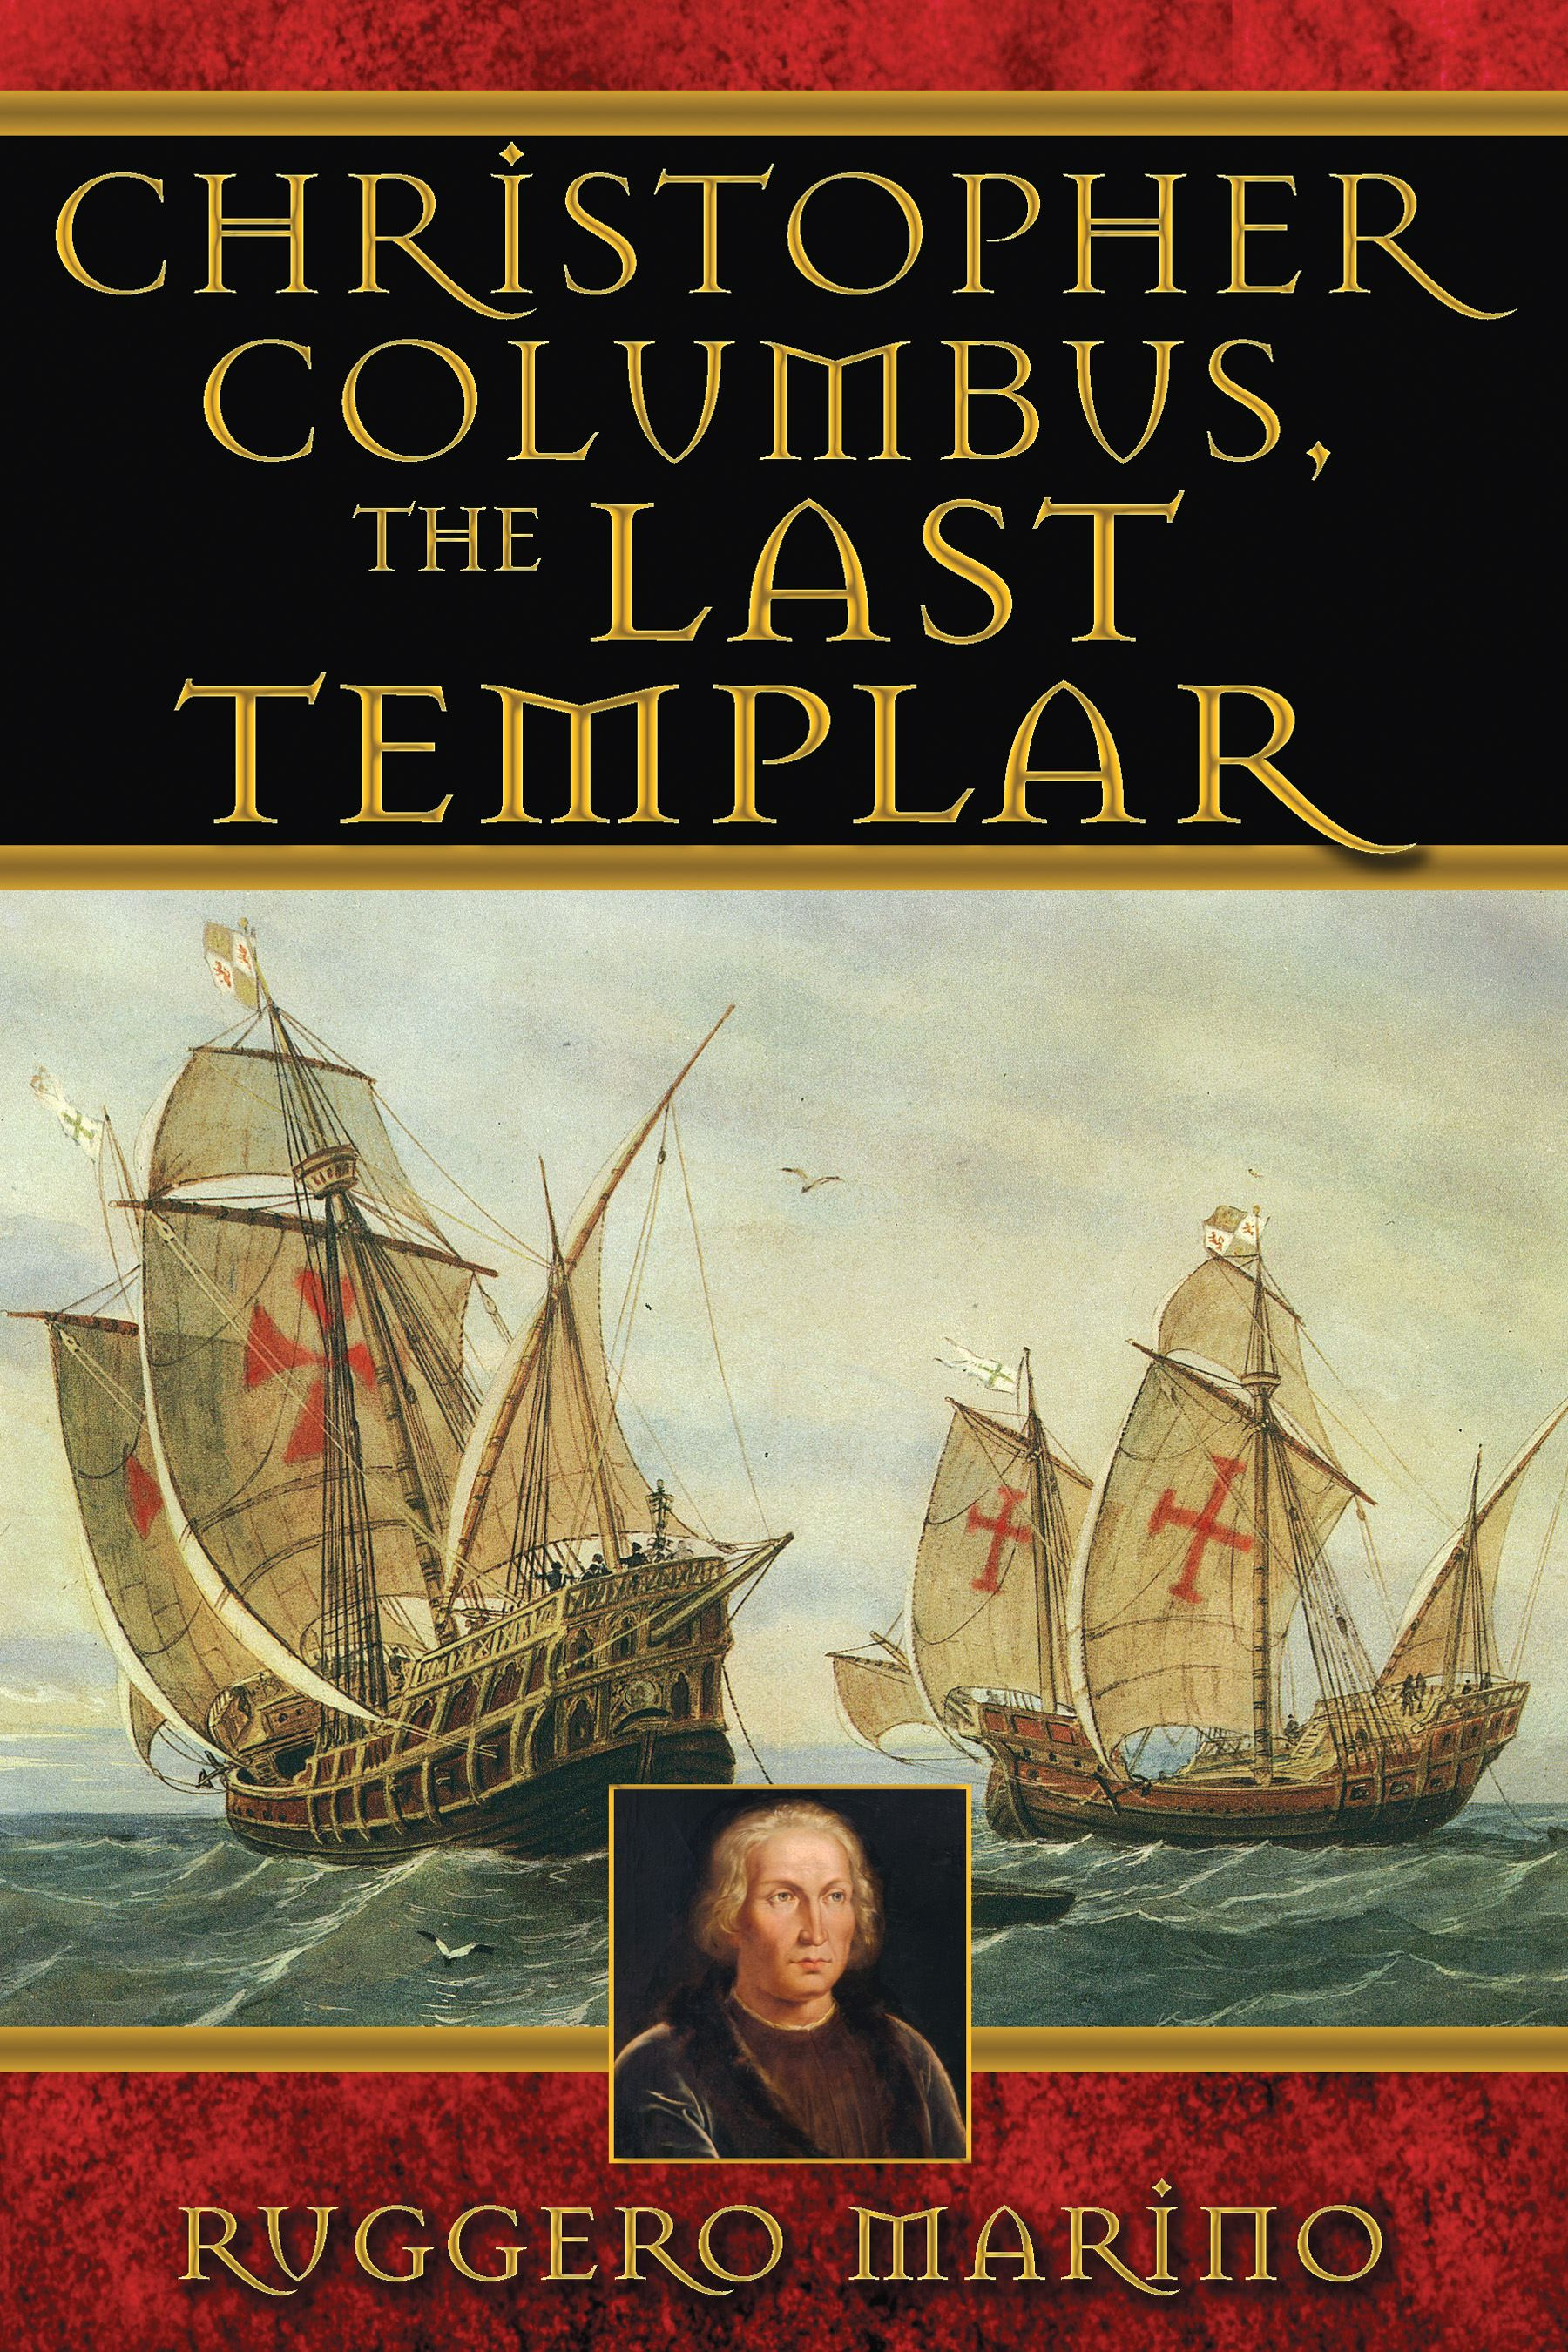 Christopher columbus the last templar 9781594771903 hr